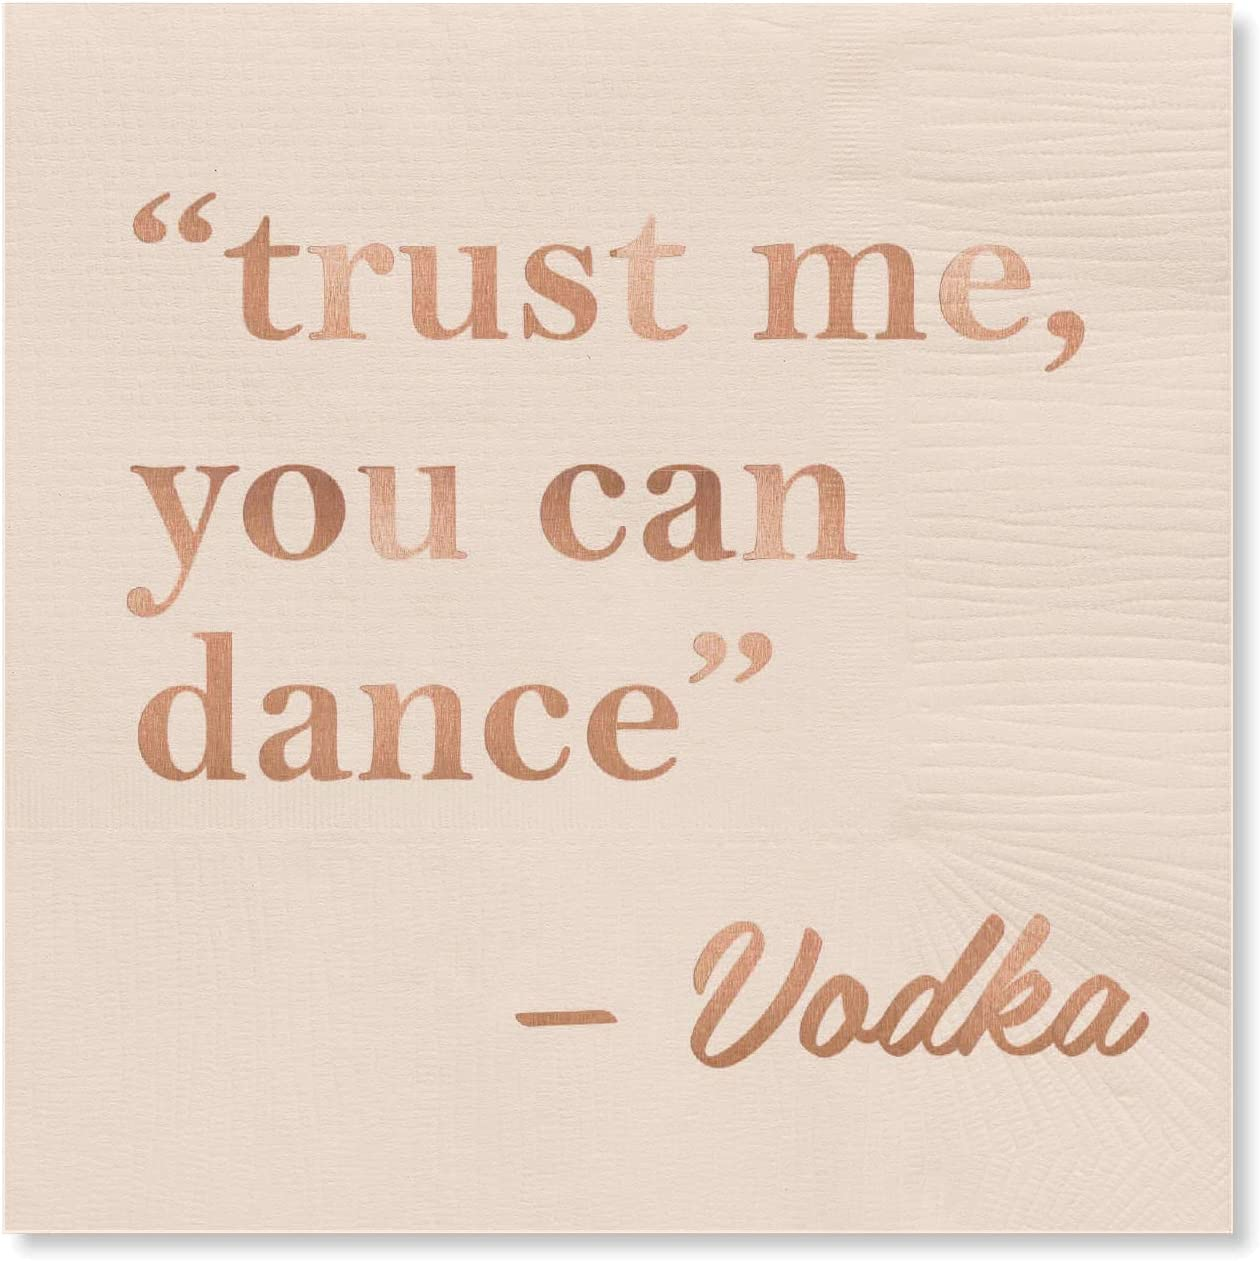 X&O Paper Goods ''Trust Me, You Can Dance -Vodka'' Funny Beverage Napkins, 20 ct., 5'' x 5''